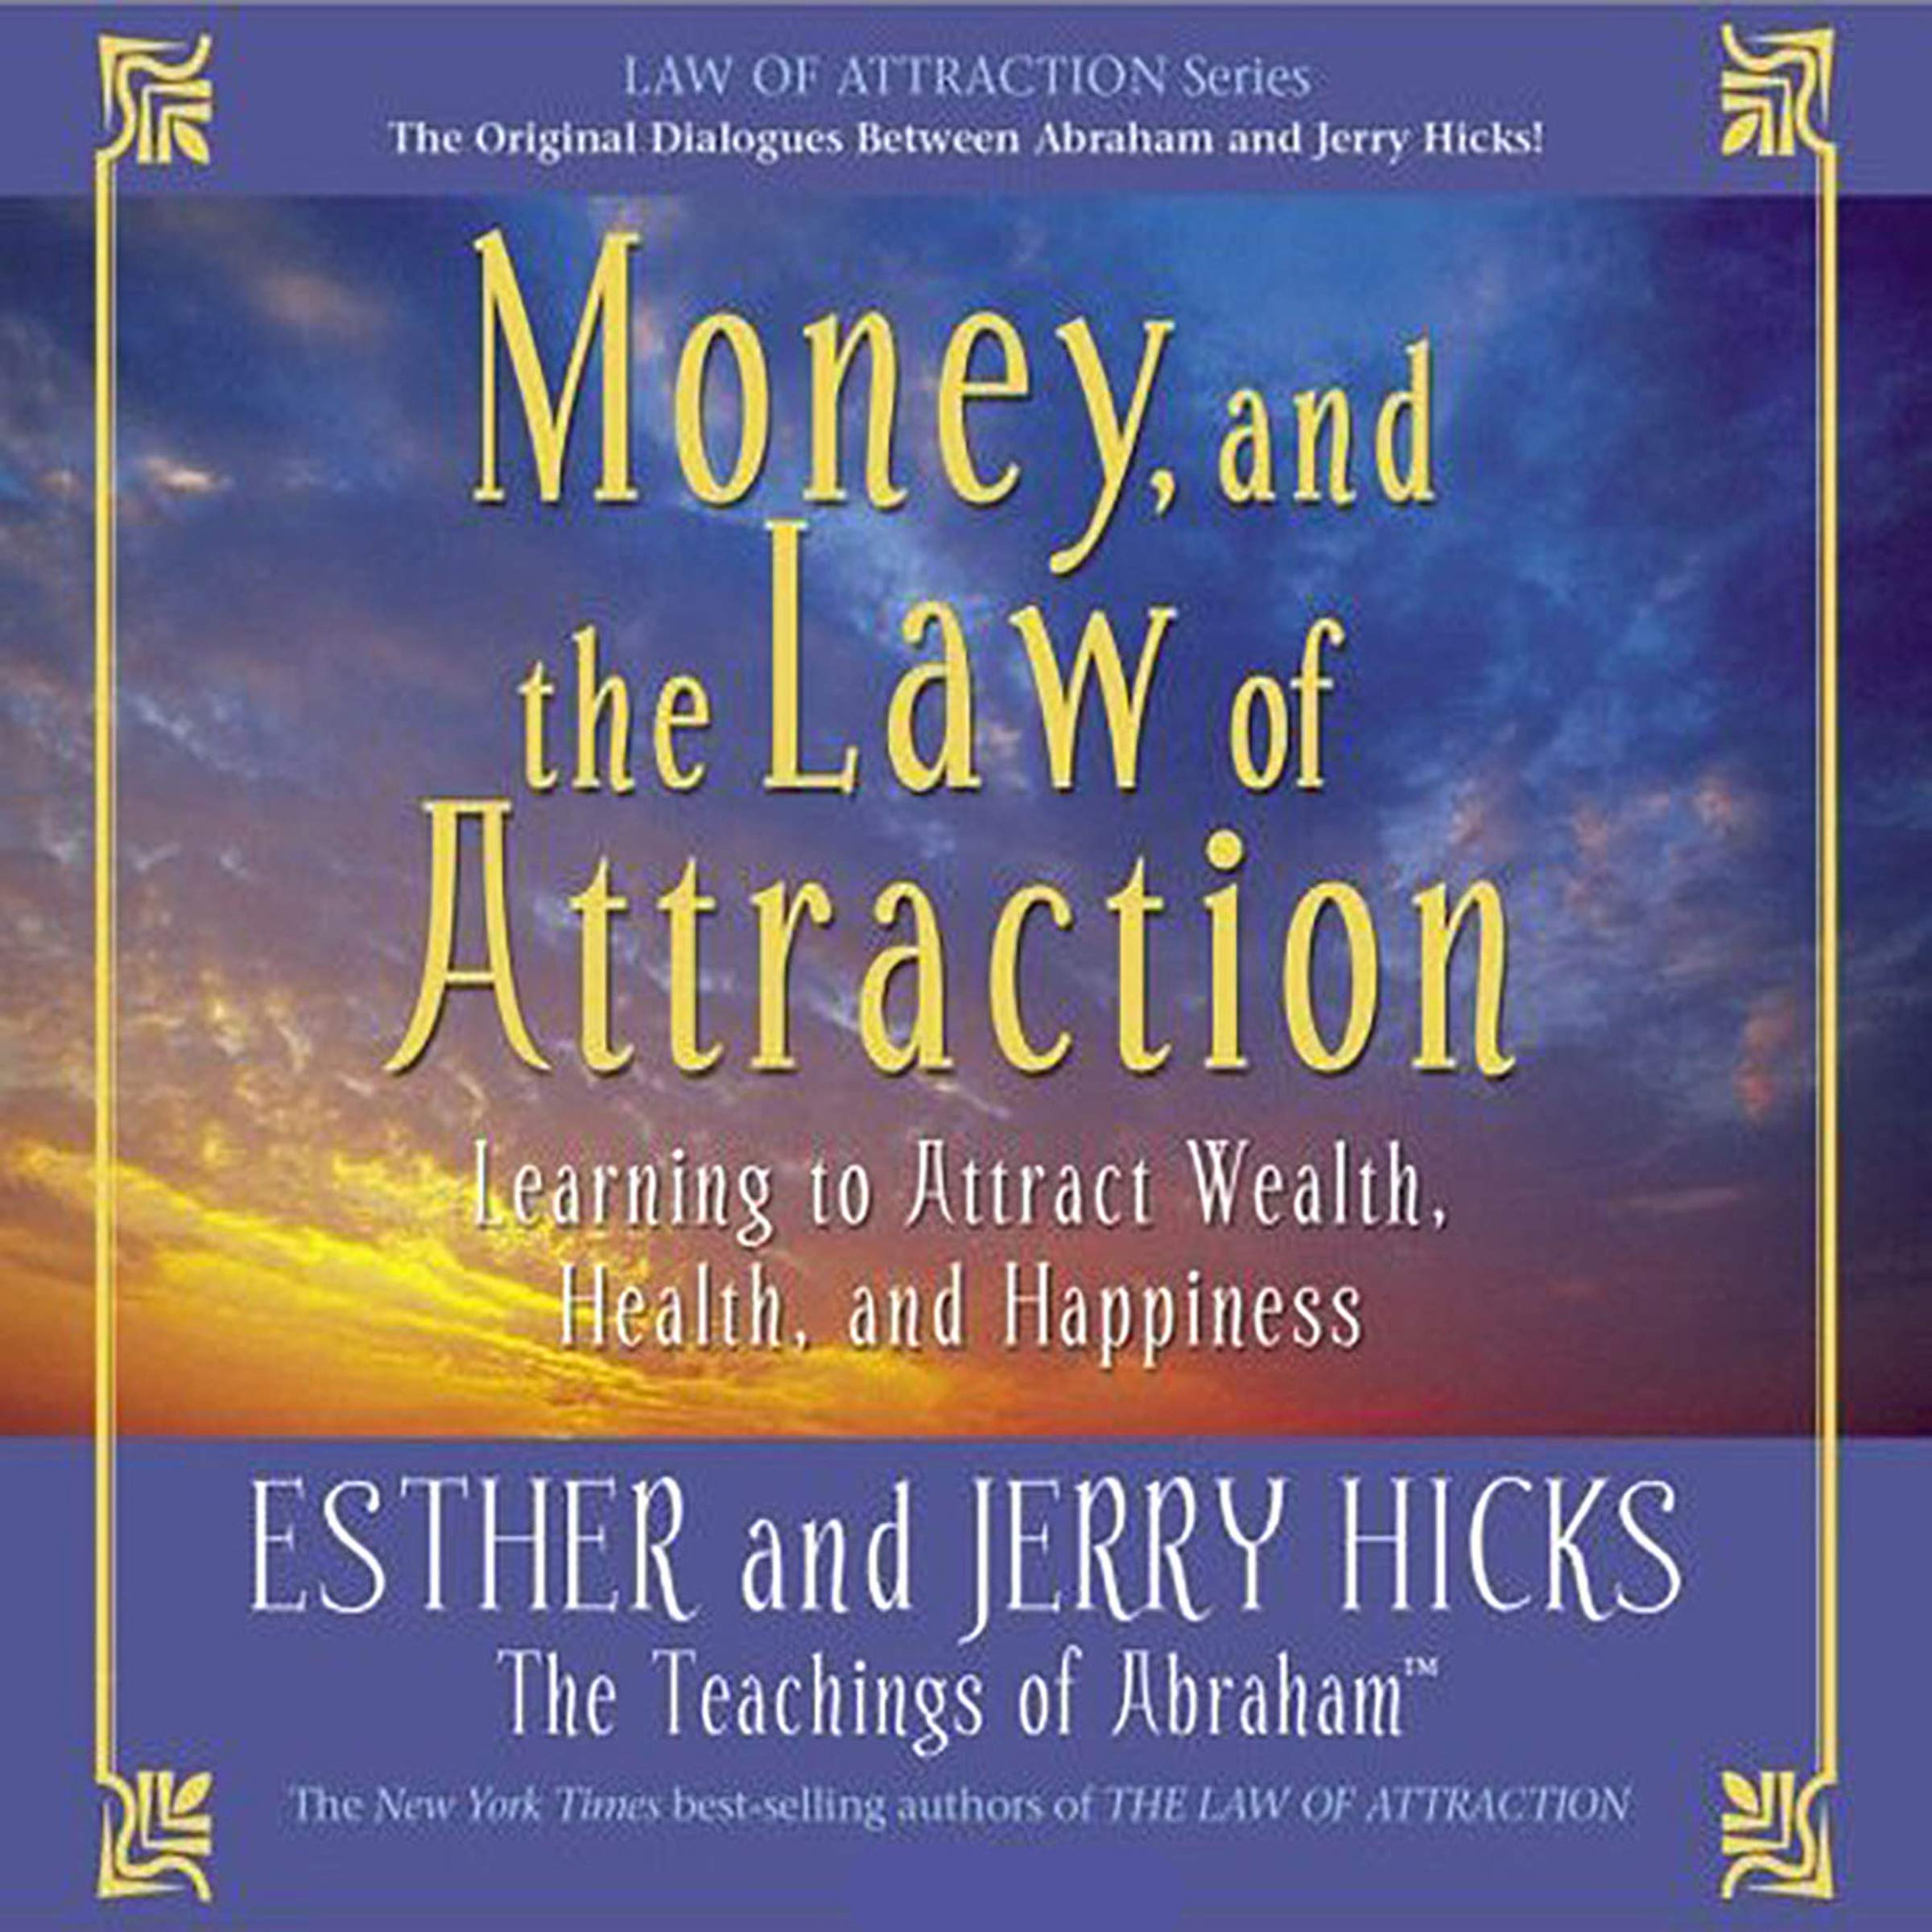 Money and the Law of Attraction: Learning to Attract Wealth Health and Happiness